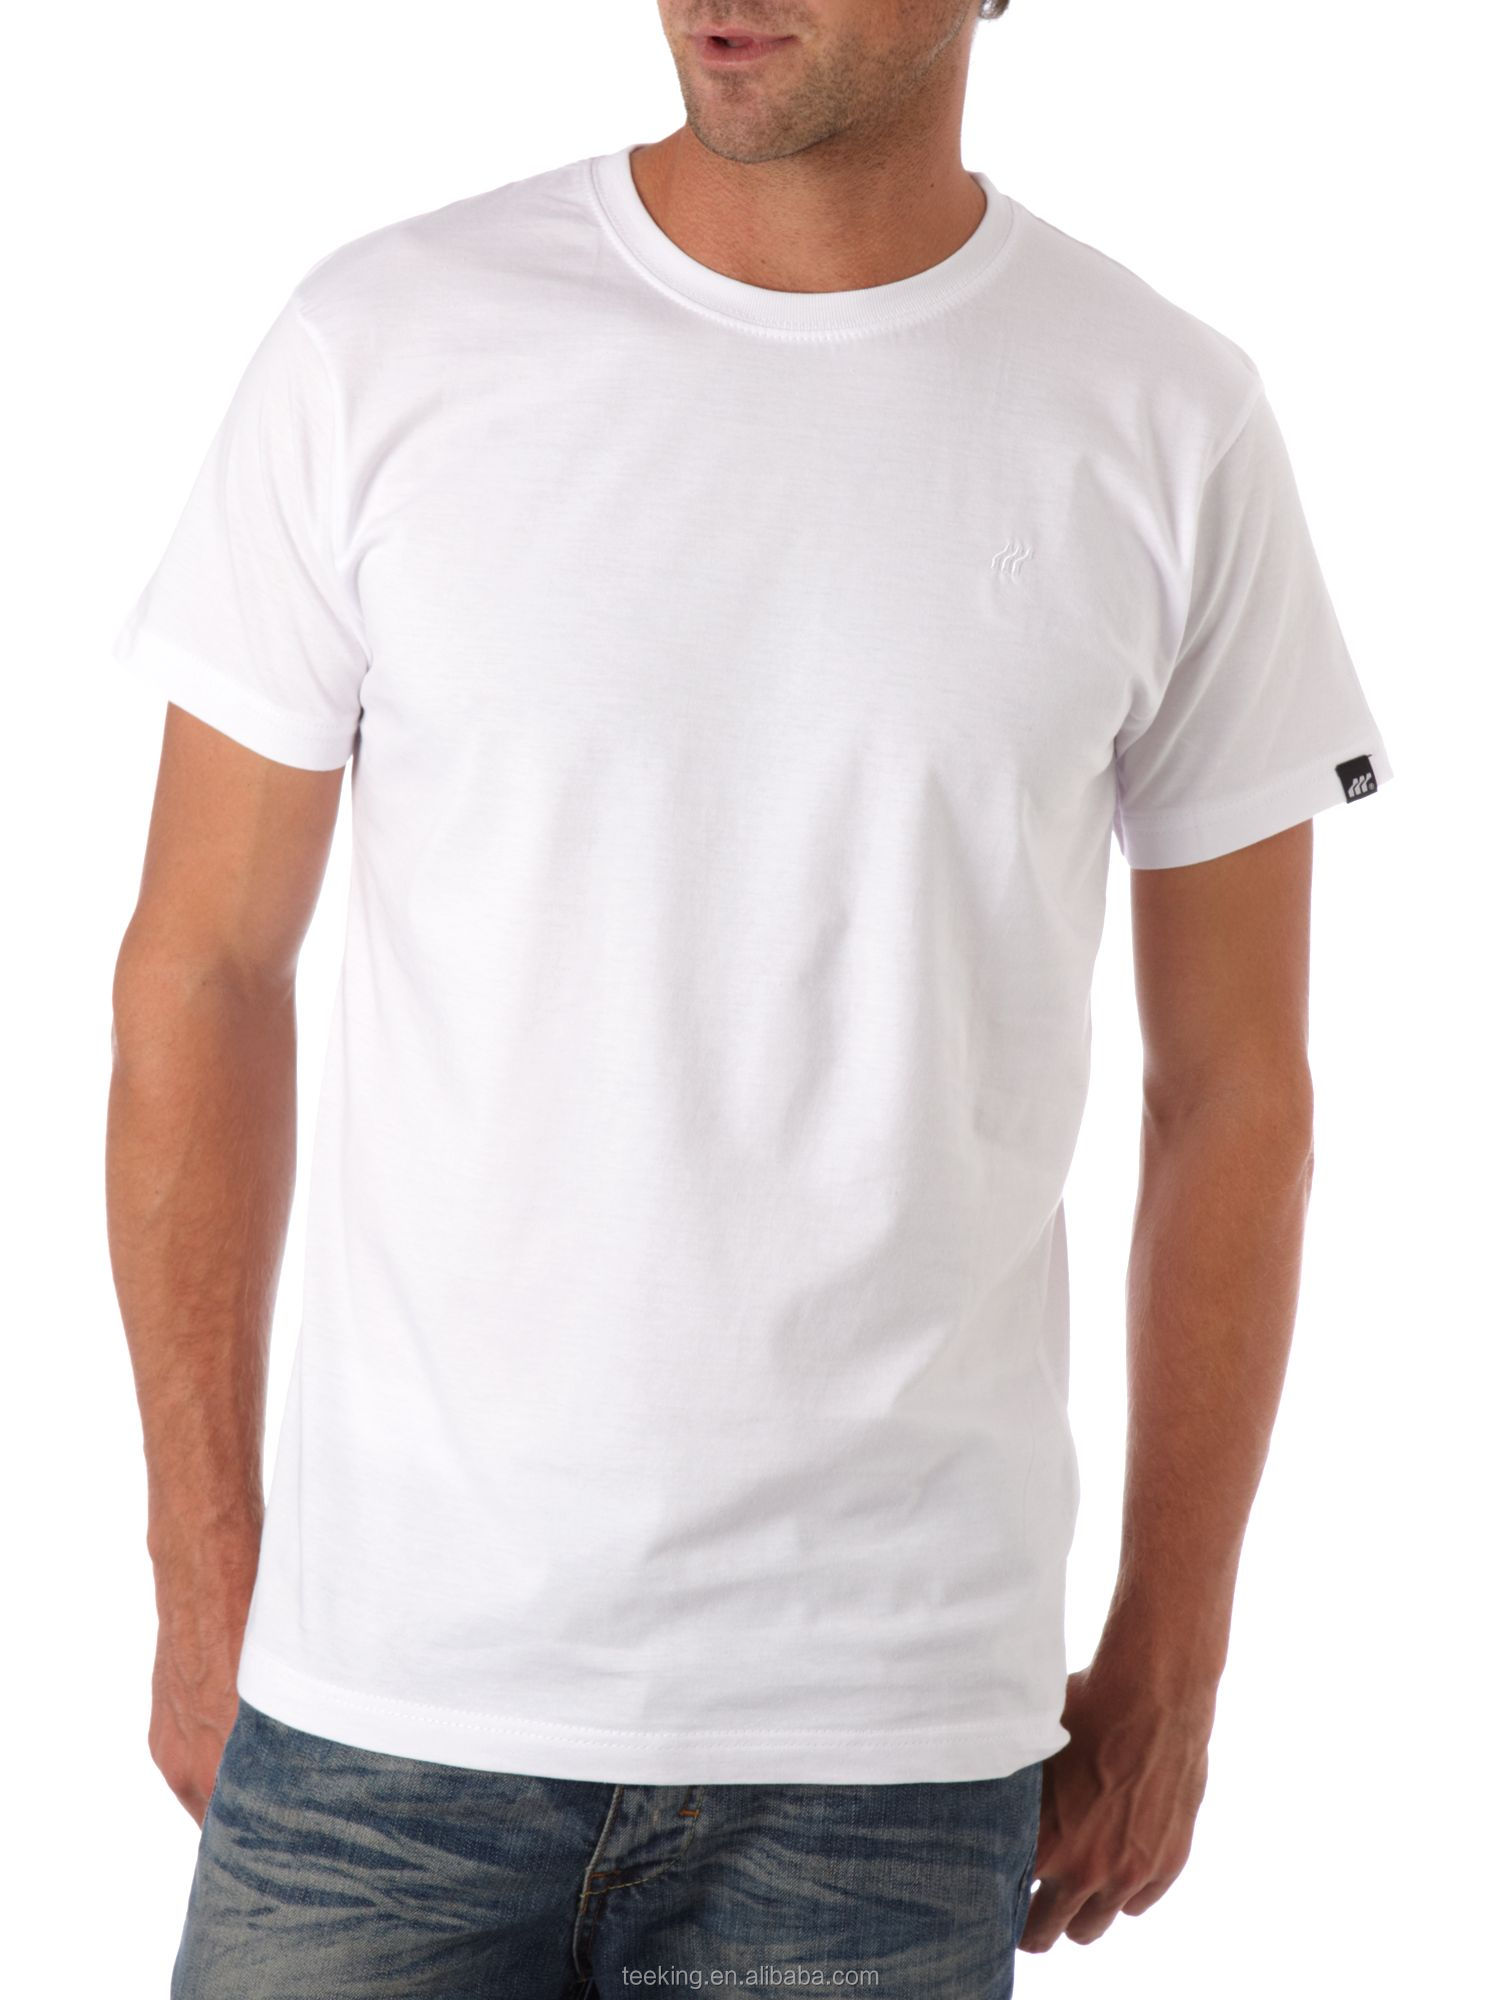 The color white is the most popular color in the t-shirt business because it is so flexible. After all, any print looks good on a white tee. We carry white tees for all ages including infants all the way to size 5XL.